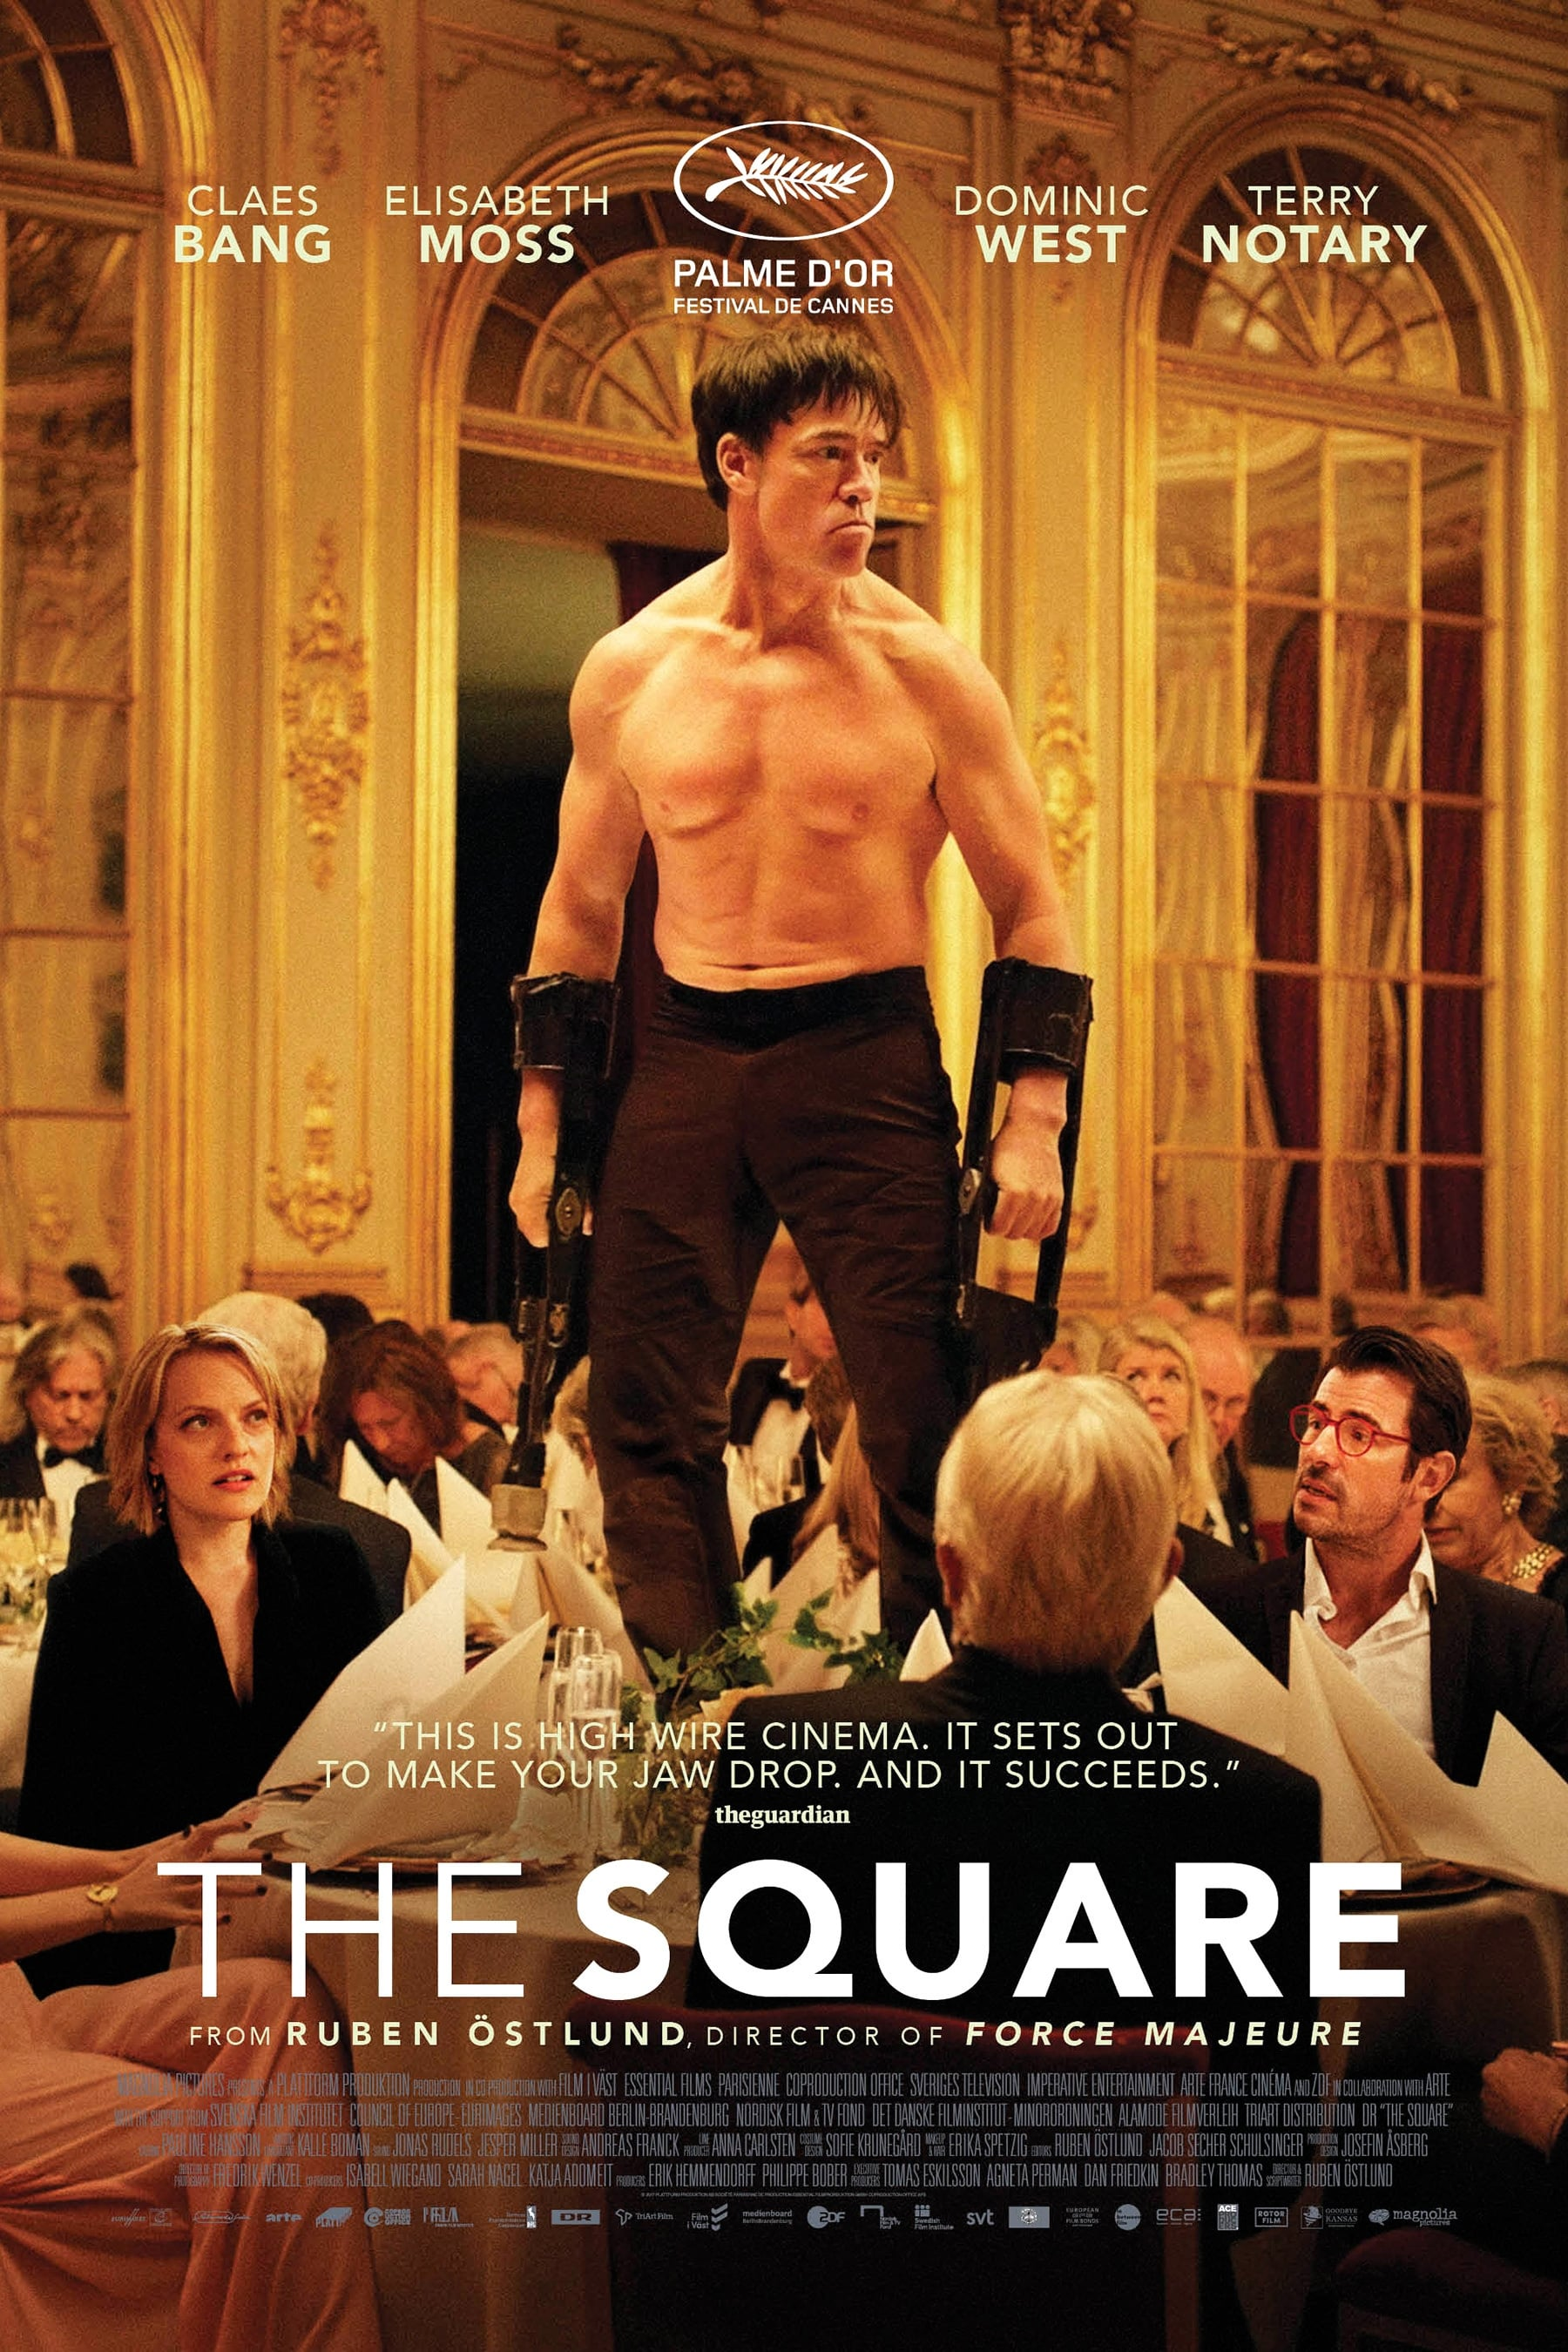 Assistir The Square: A Arte da Discórdia Legendado Online Legendado 1080p